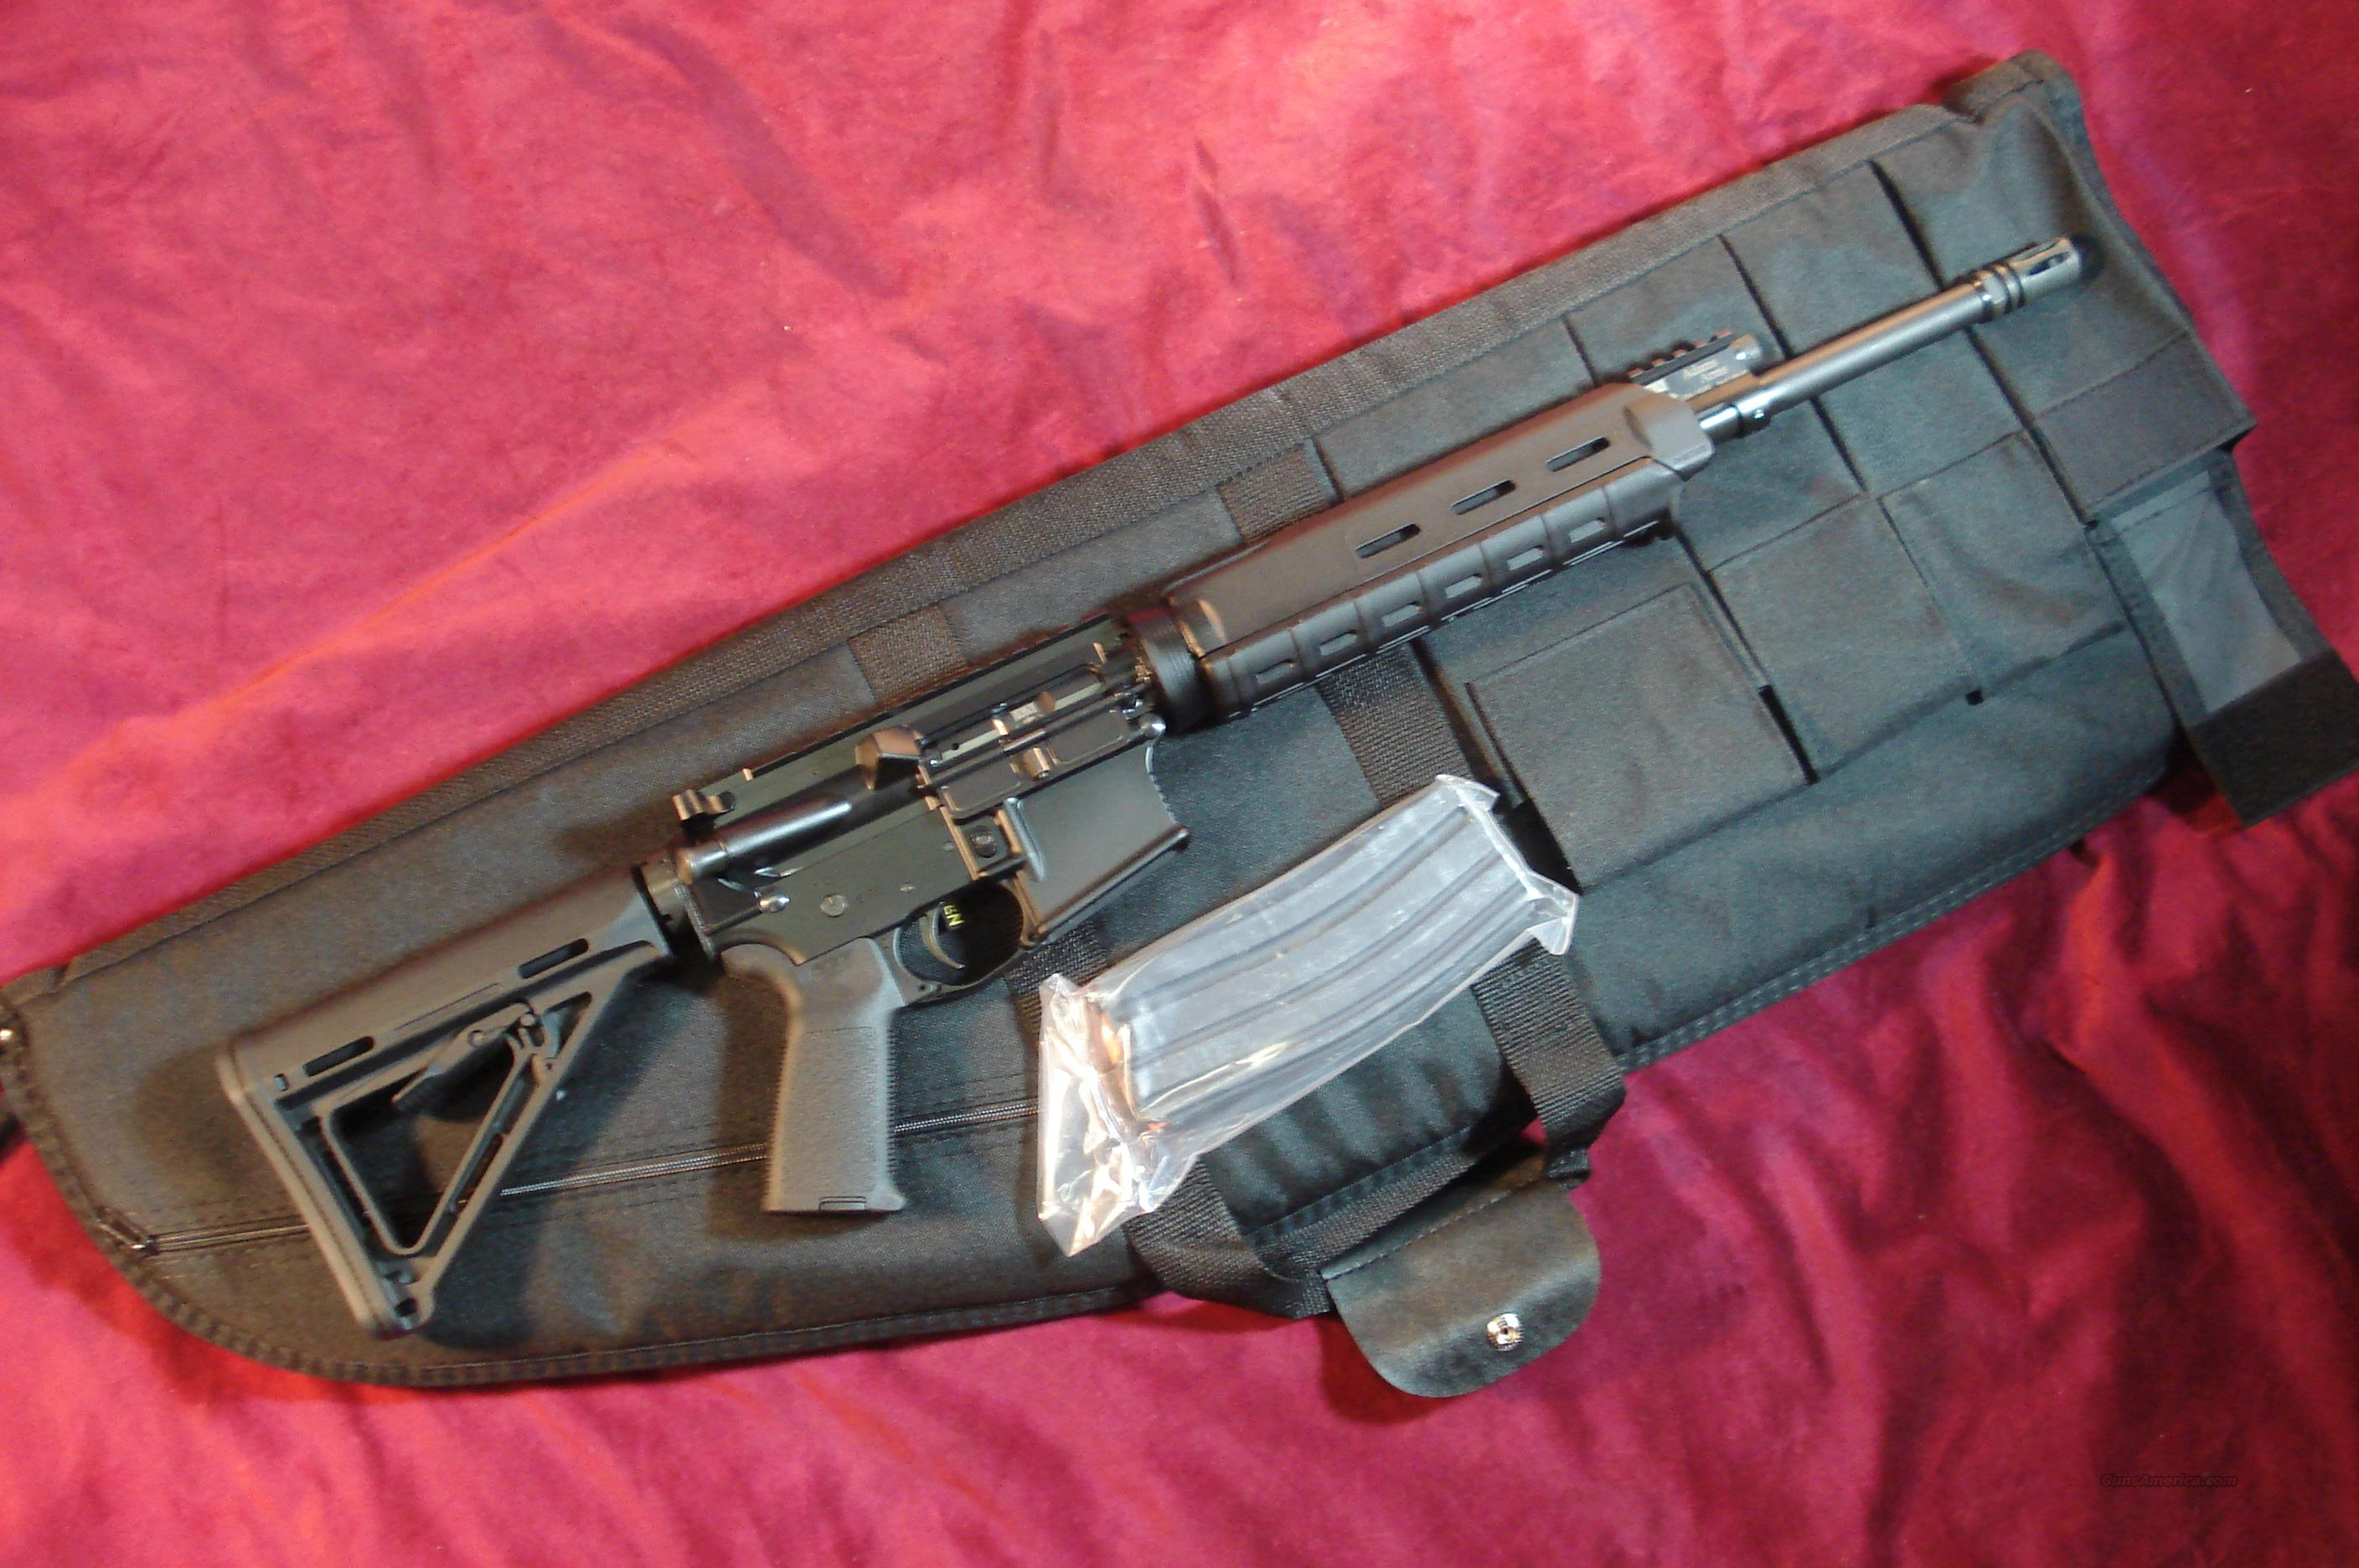 ADAMS ARMS PISTON AR15 223 CAL MAGPUL EQUIPMENT NEW  Guns > Rifles > AR-15 Rifles - Small Manufacturers > Complete Rifle